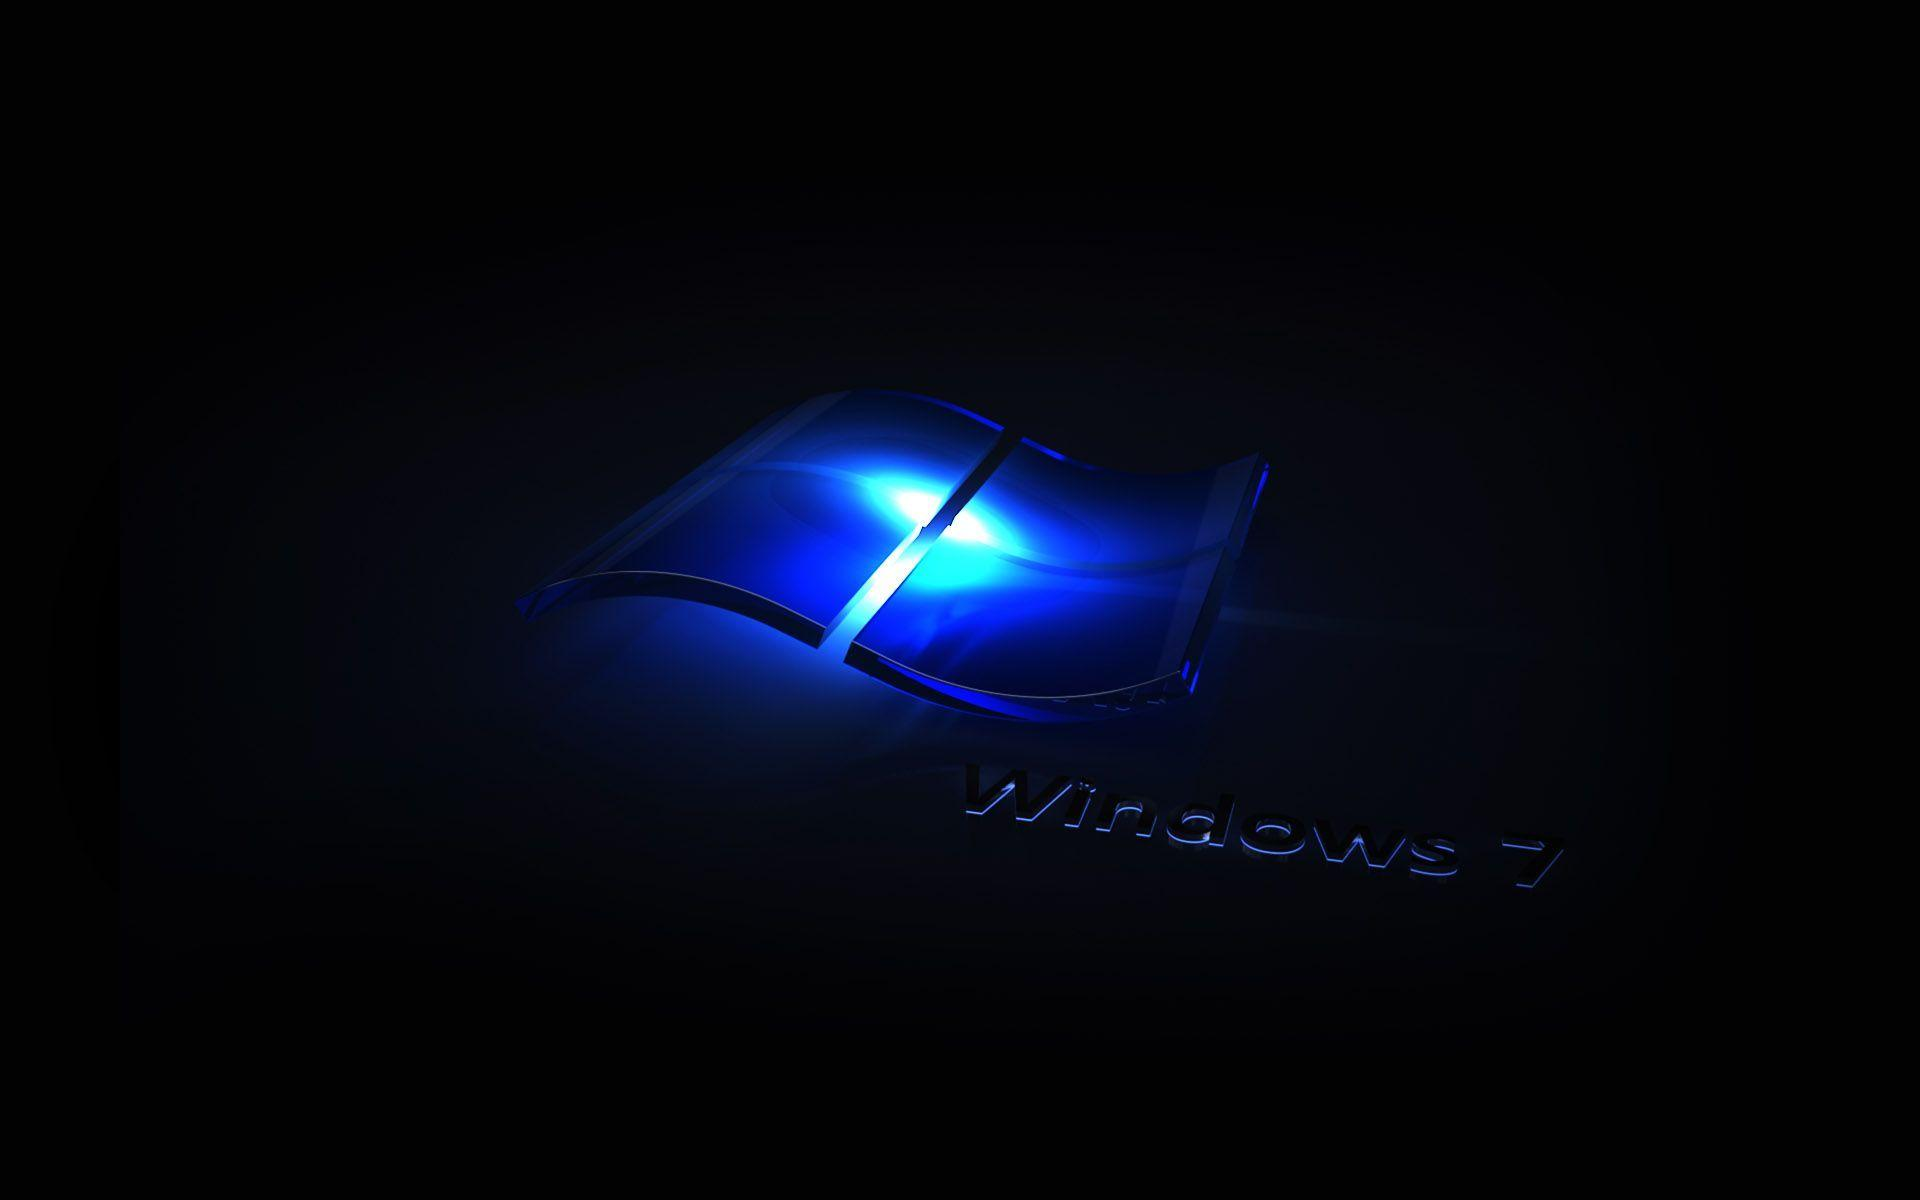 Blue Windows Logo Wallpapers